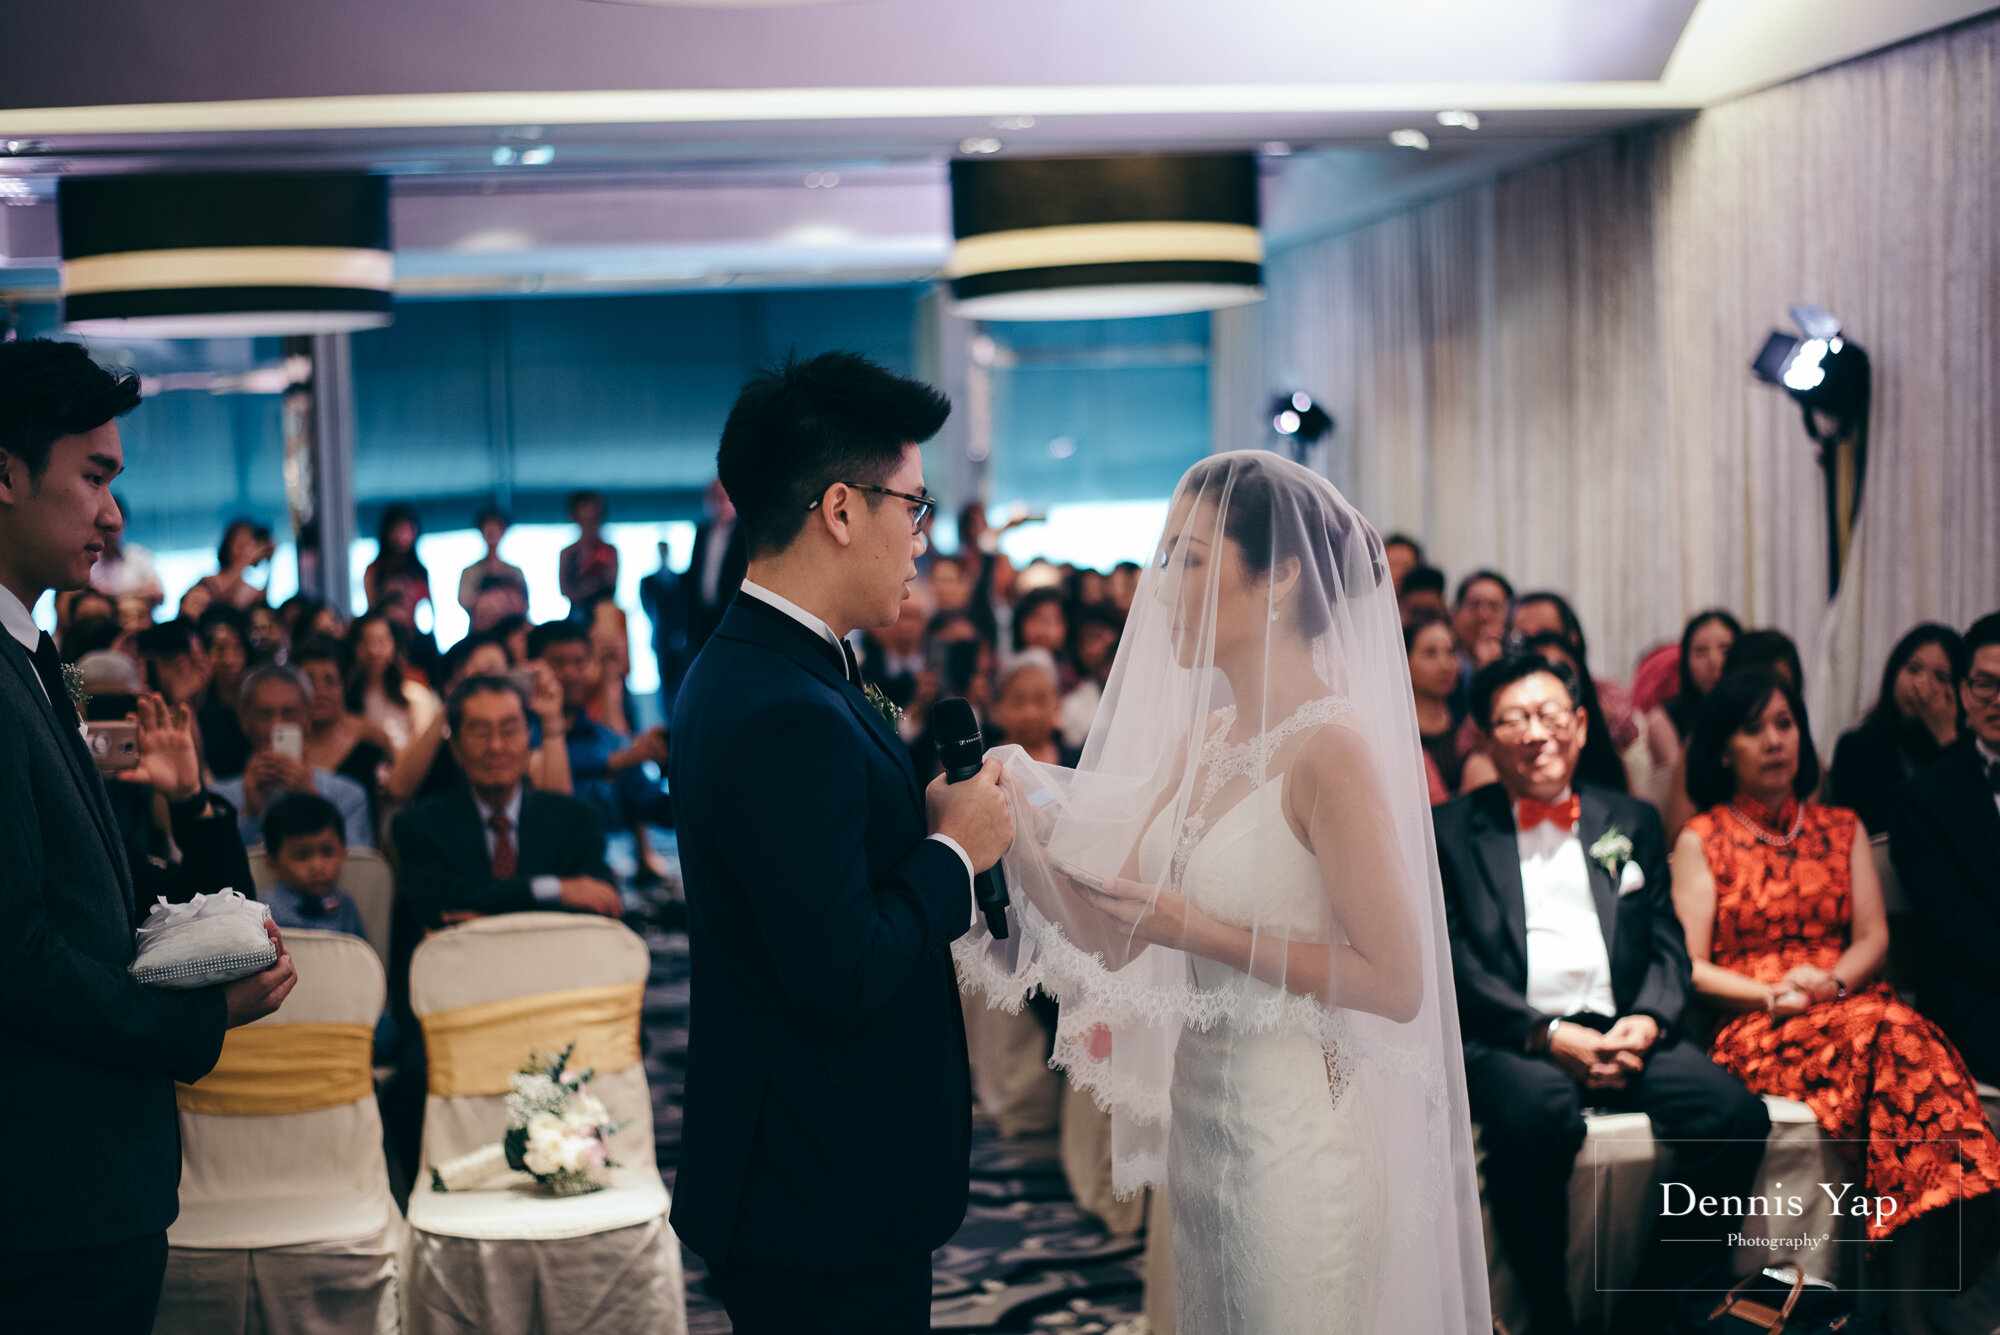 kevan khing wei wedding day hilton kuala lumpur vow exchange ceremony dennis yap photography malaysia top wedding photographer-16.jpg